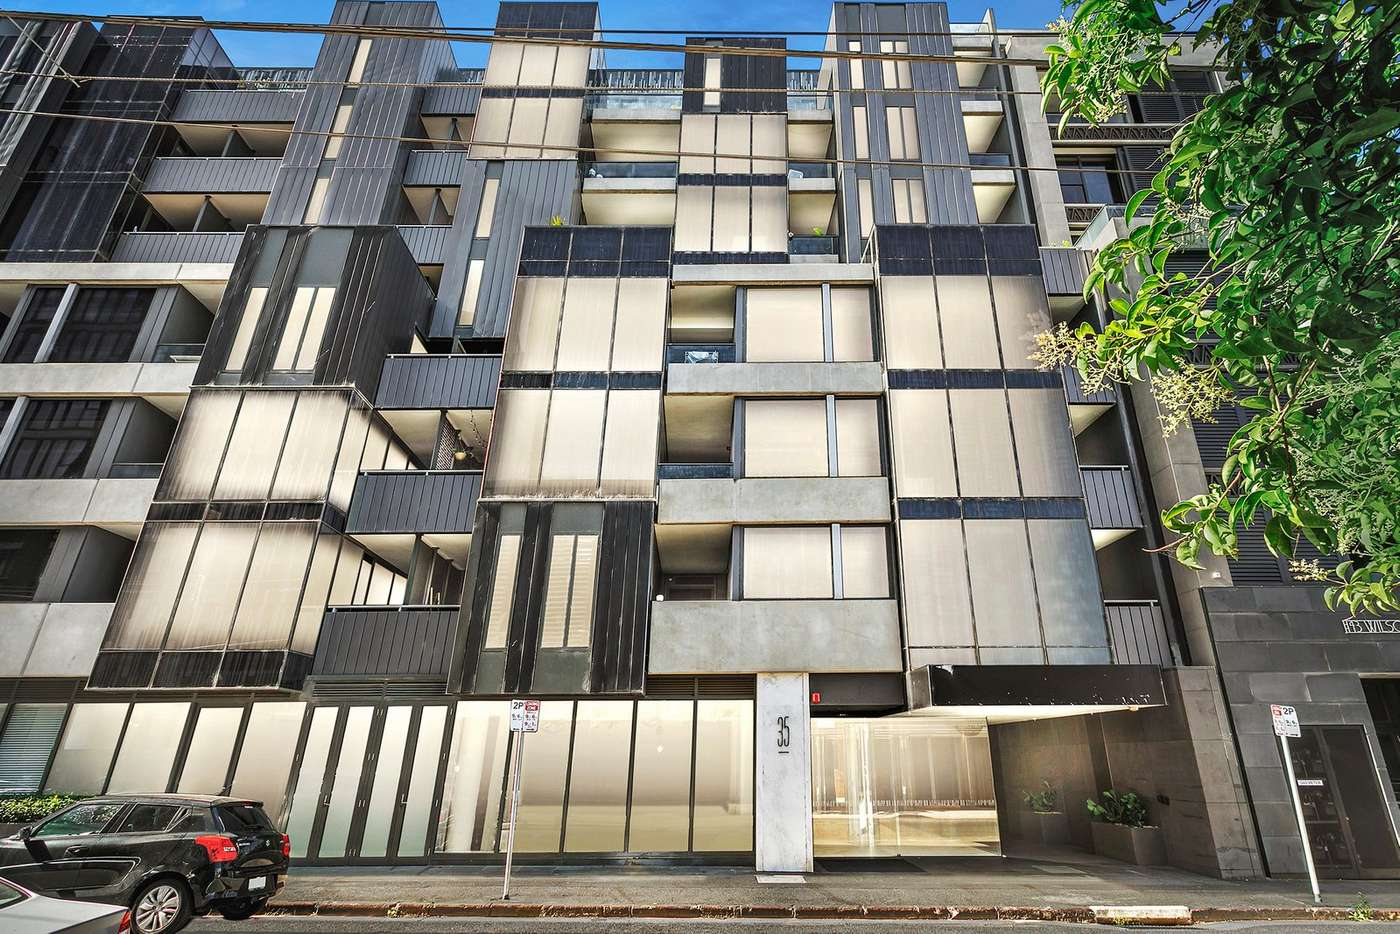 Main view of Homely apartment listing, 310/35 Wilson Street, South Yarra VIC 3141